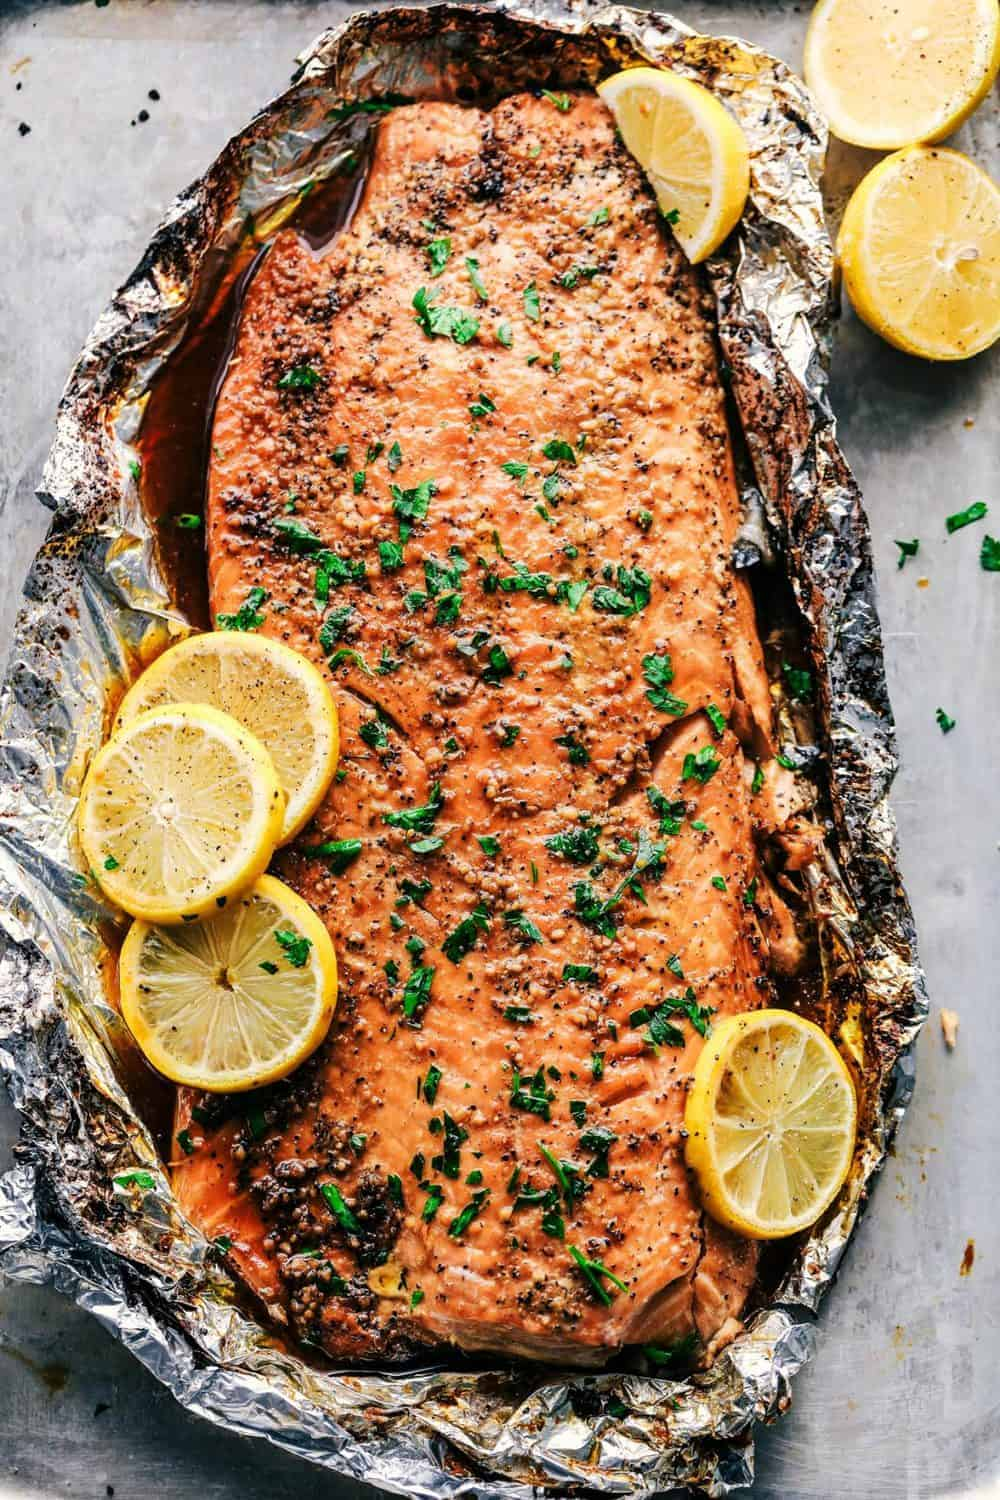 Garlic Brown Sugar Glazed Salmon Is the Easiest, Best Way to Eat Salmon